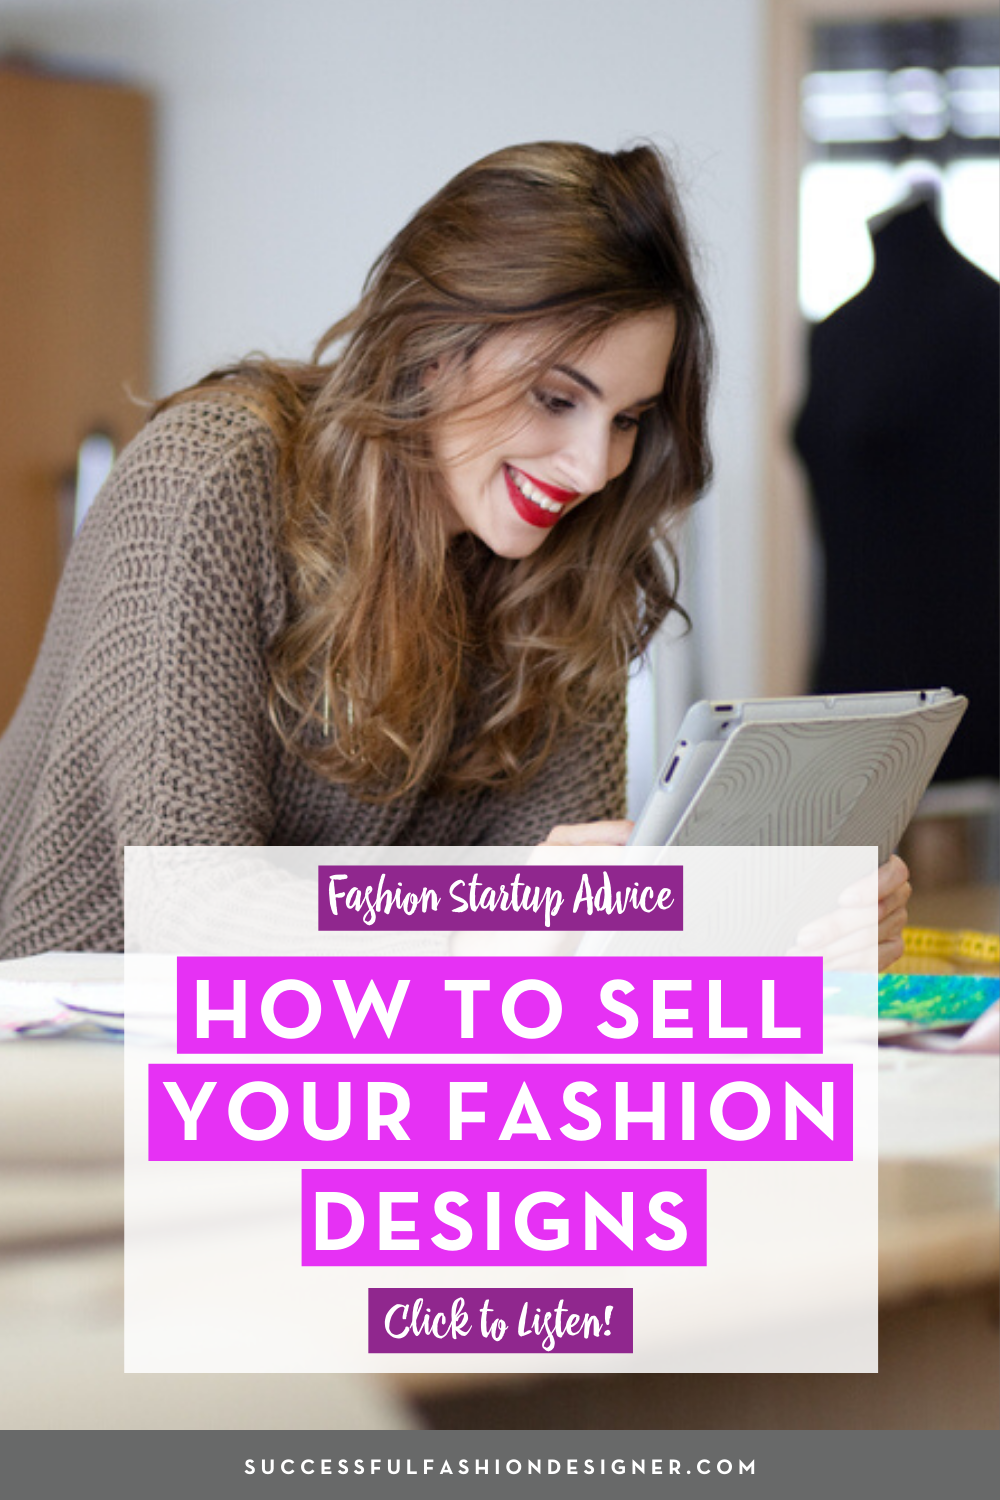 Fashion Startup Interview Designing Manufacturing And Selling Your Own Designs In 2020 Startup Fashion Career In Fashion Designing Startup Design